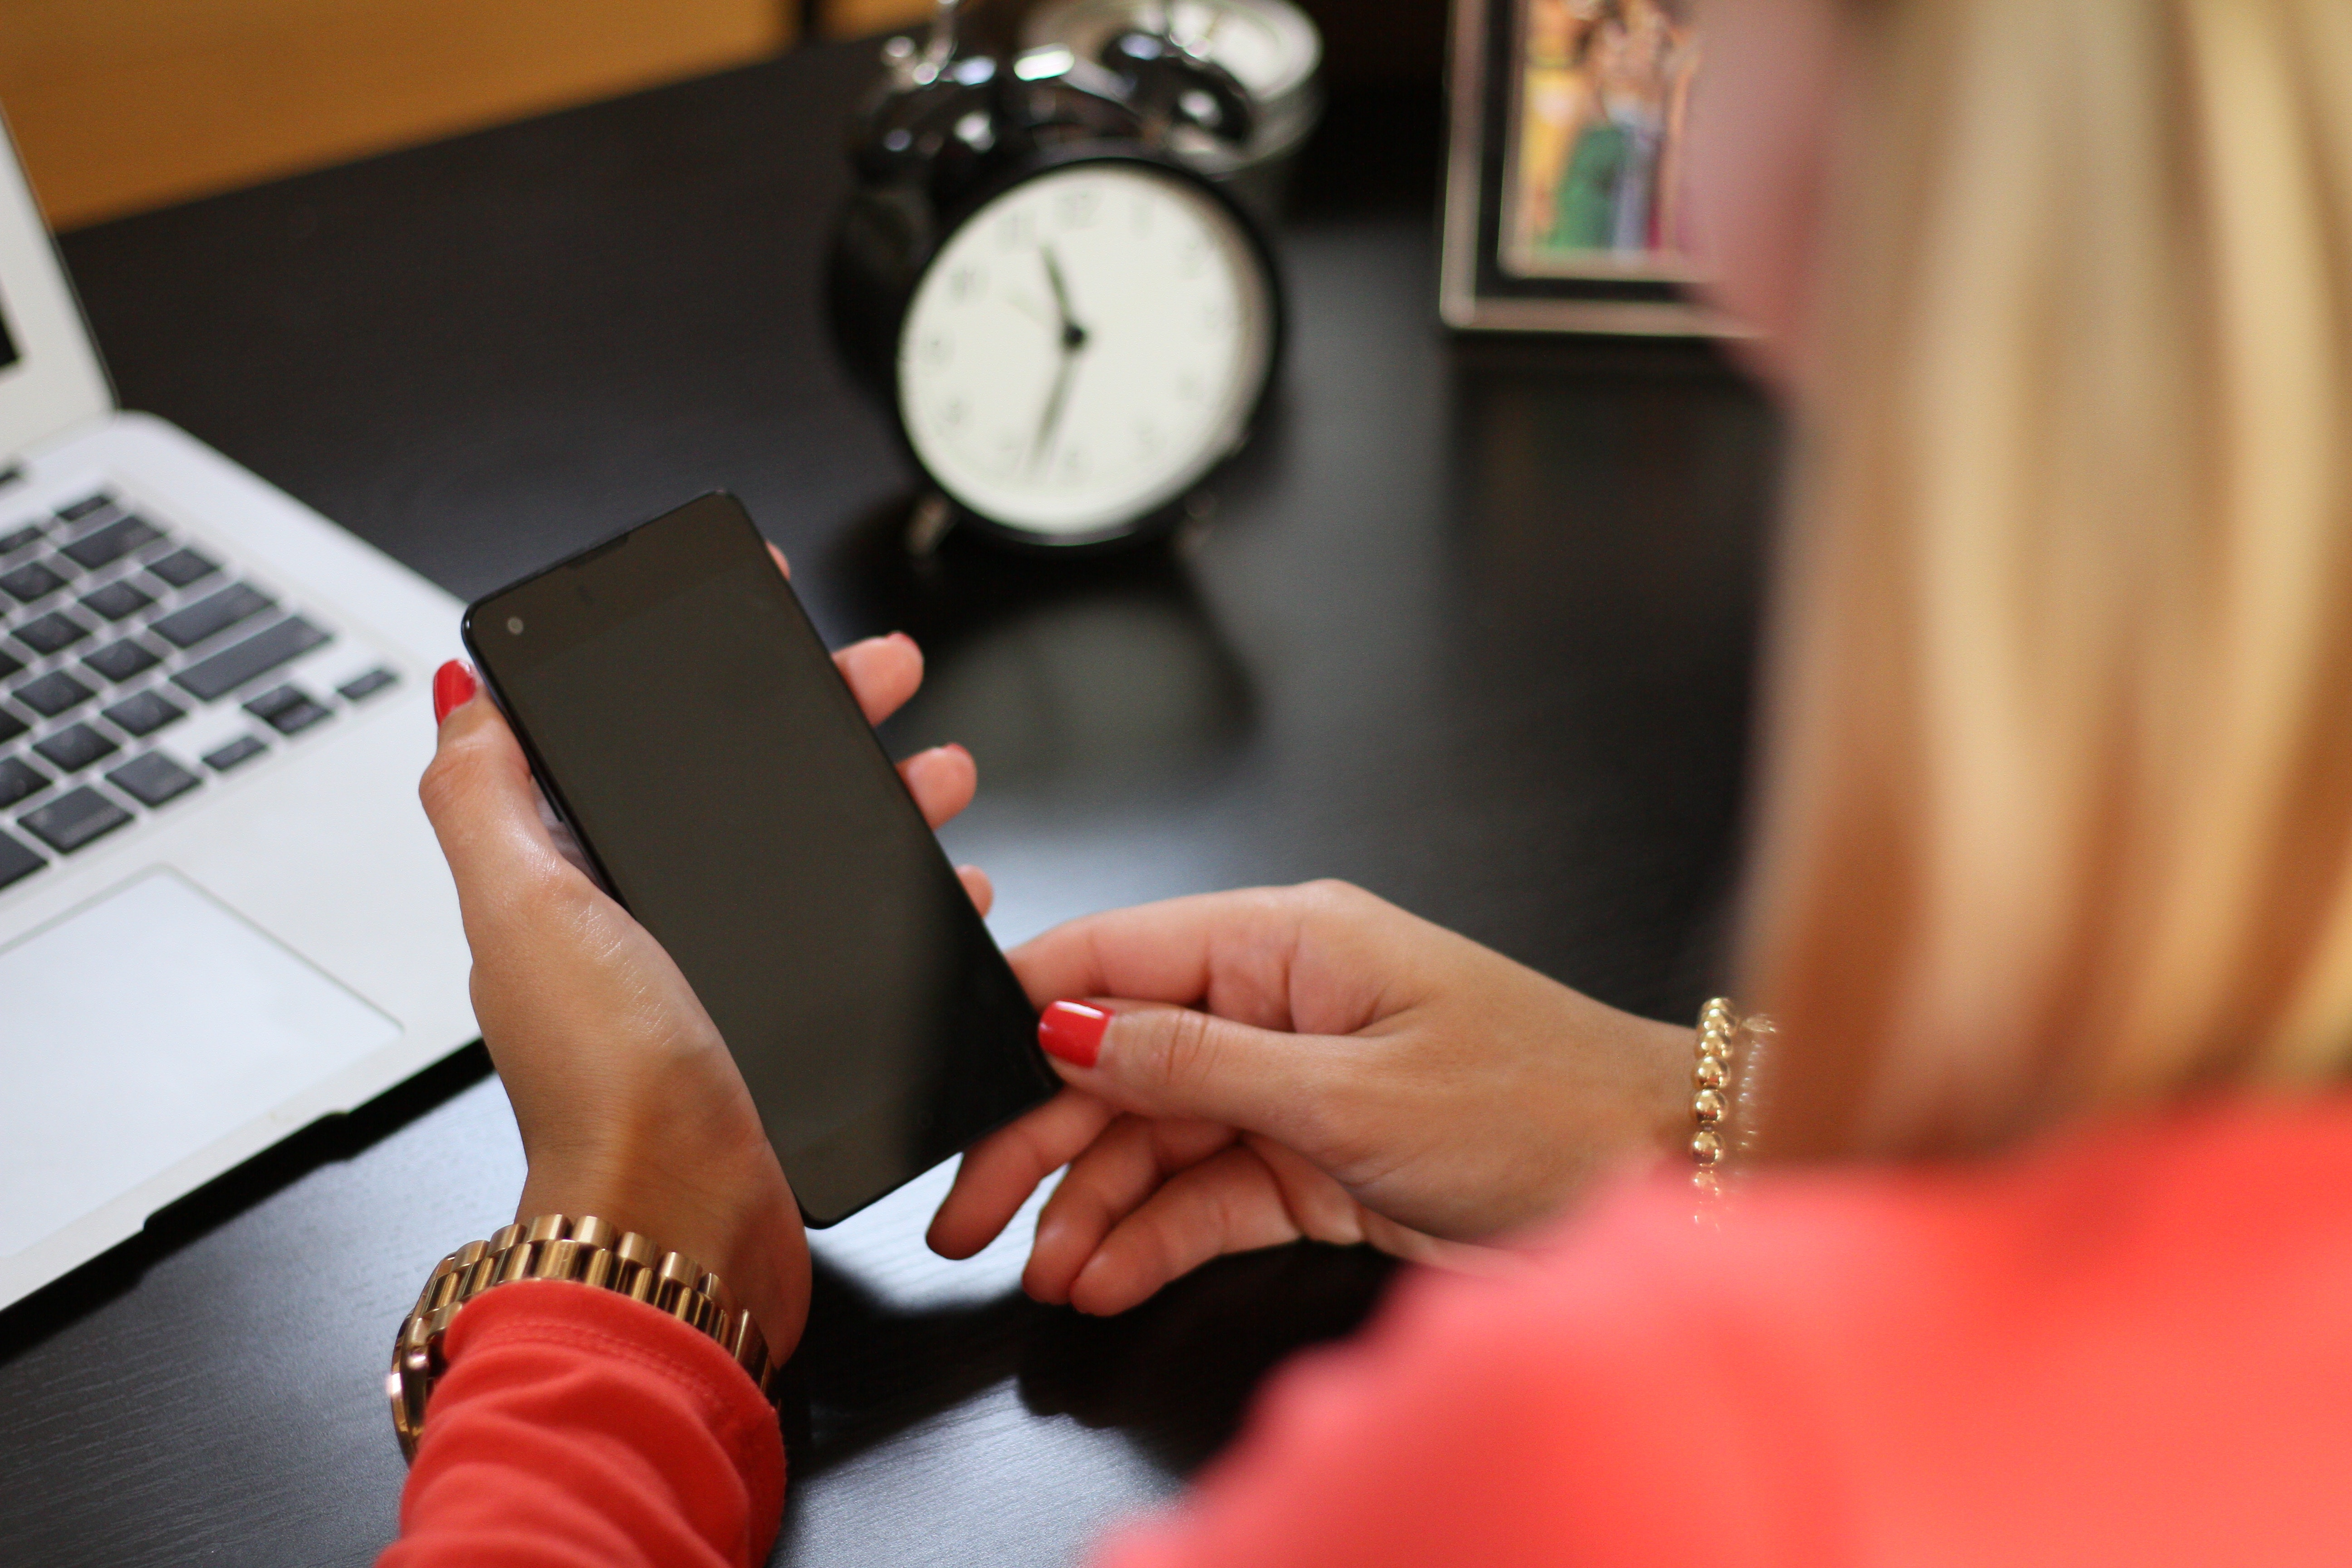 Picture of a woman using a phone in front of a laptop and a clock